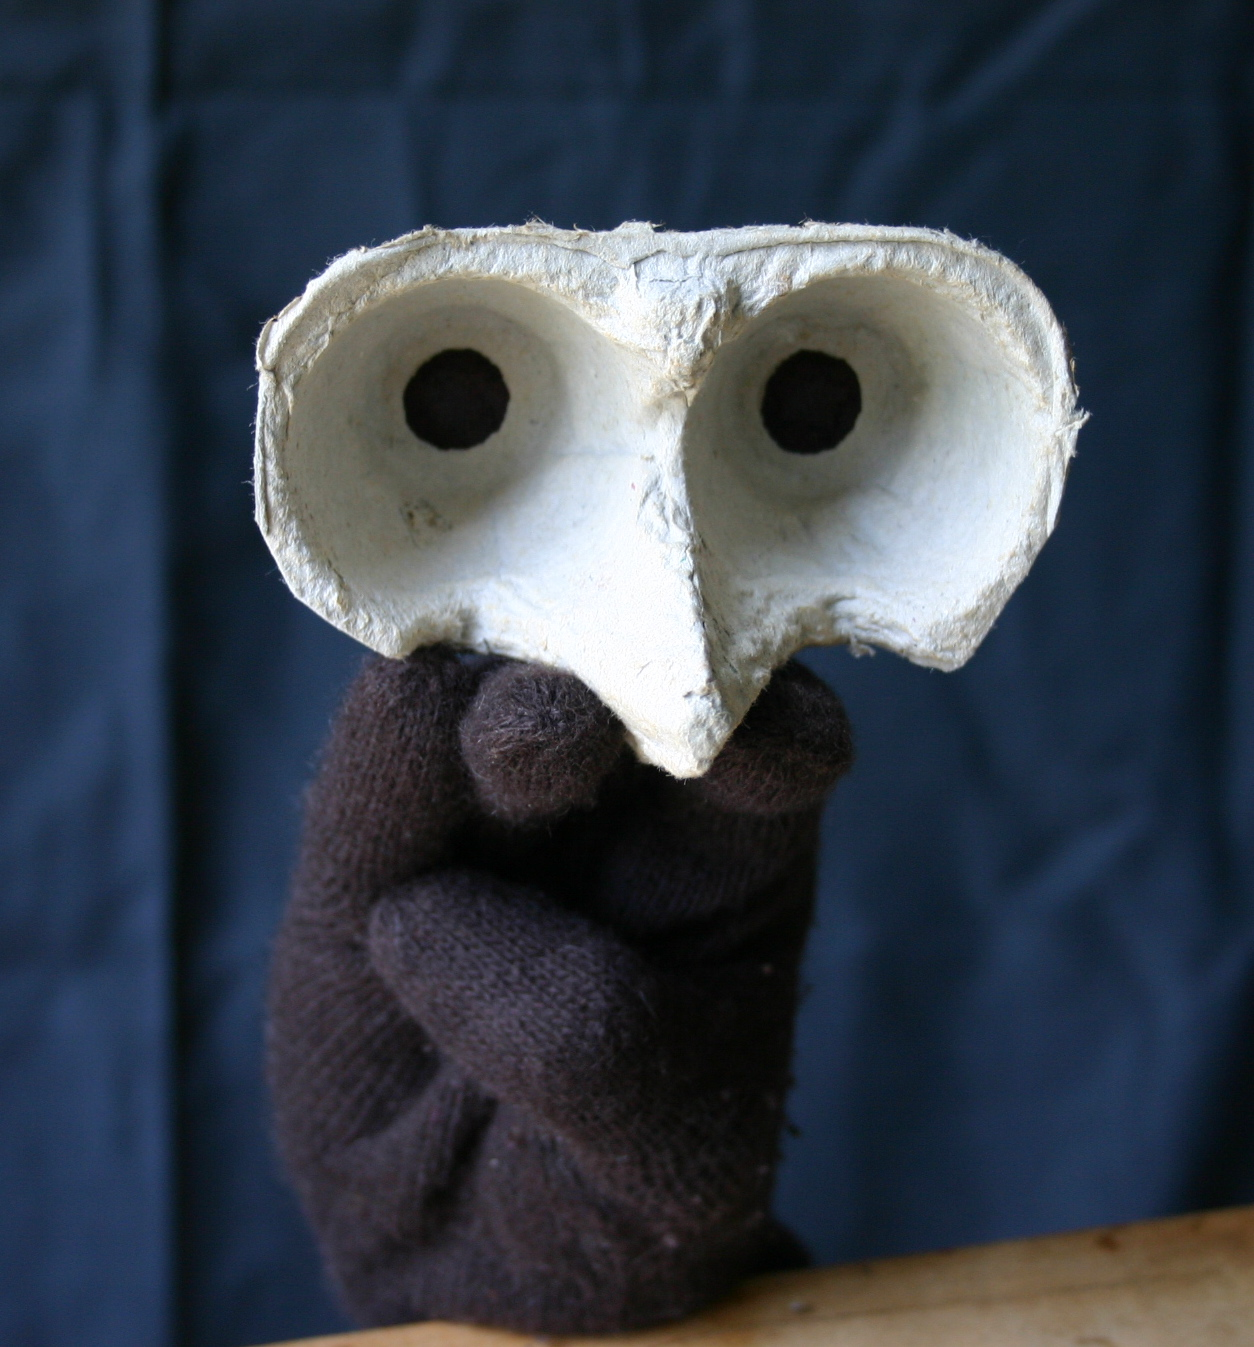 A dark glove and part of an egg carton are used to make this maumenshanz hand puppet.